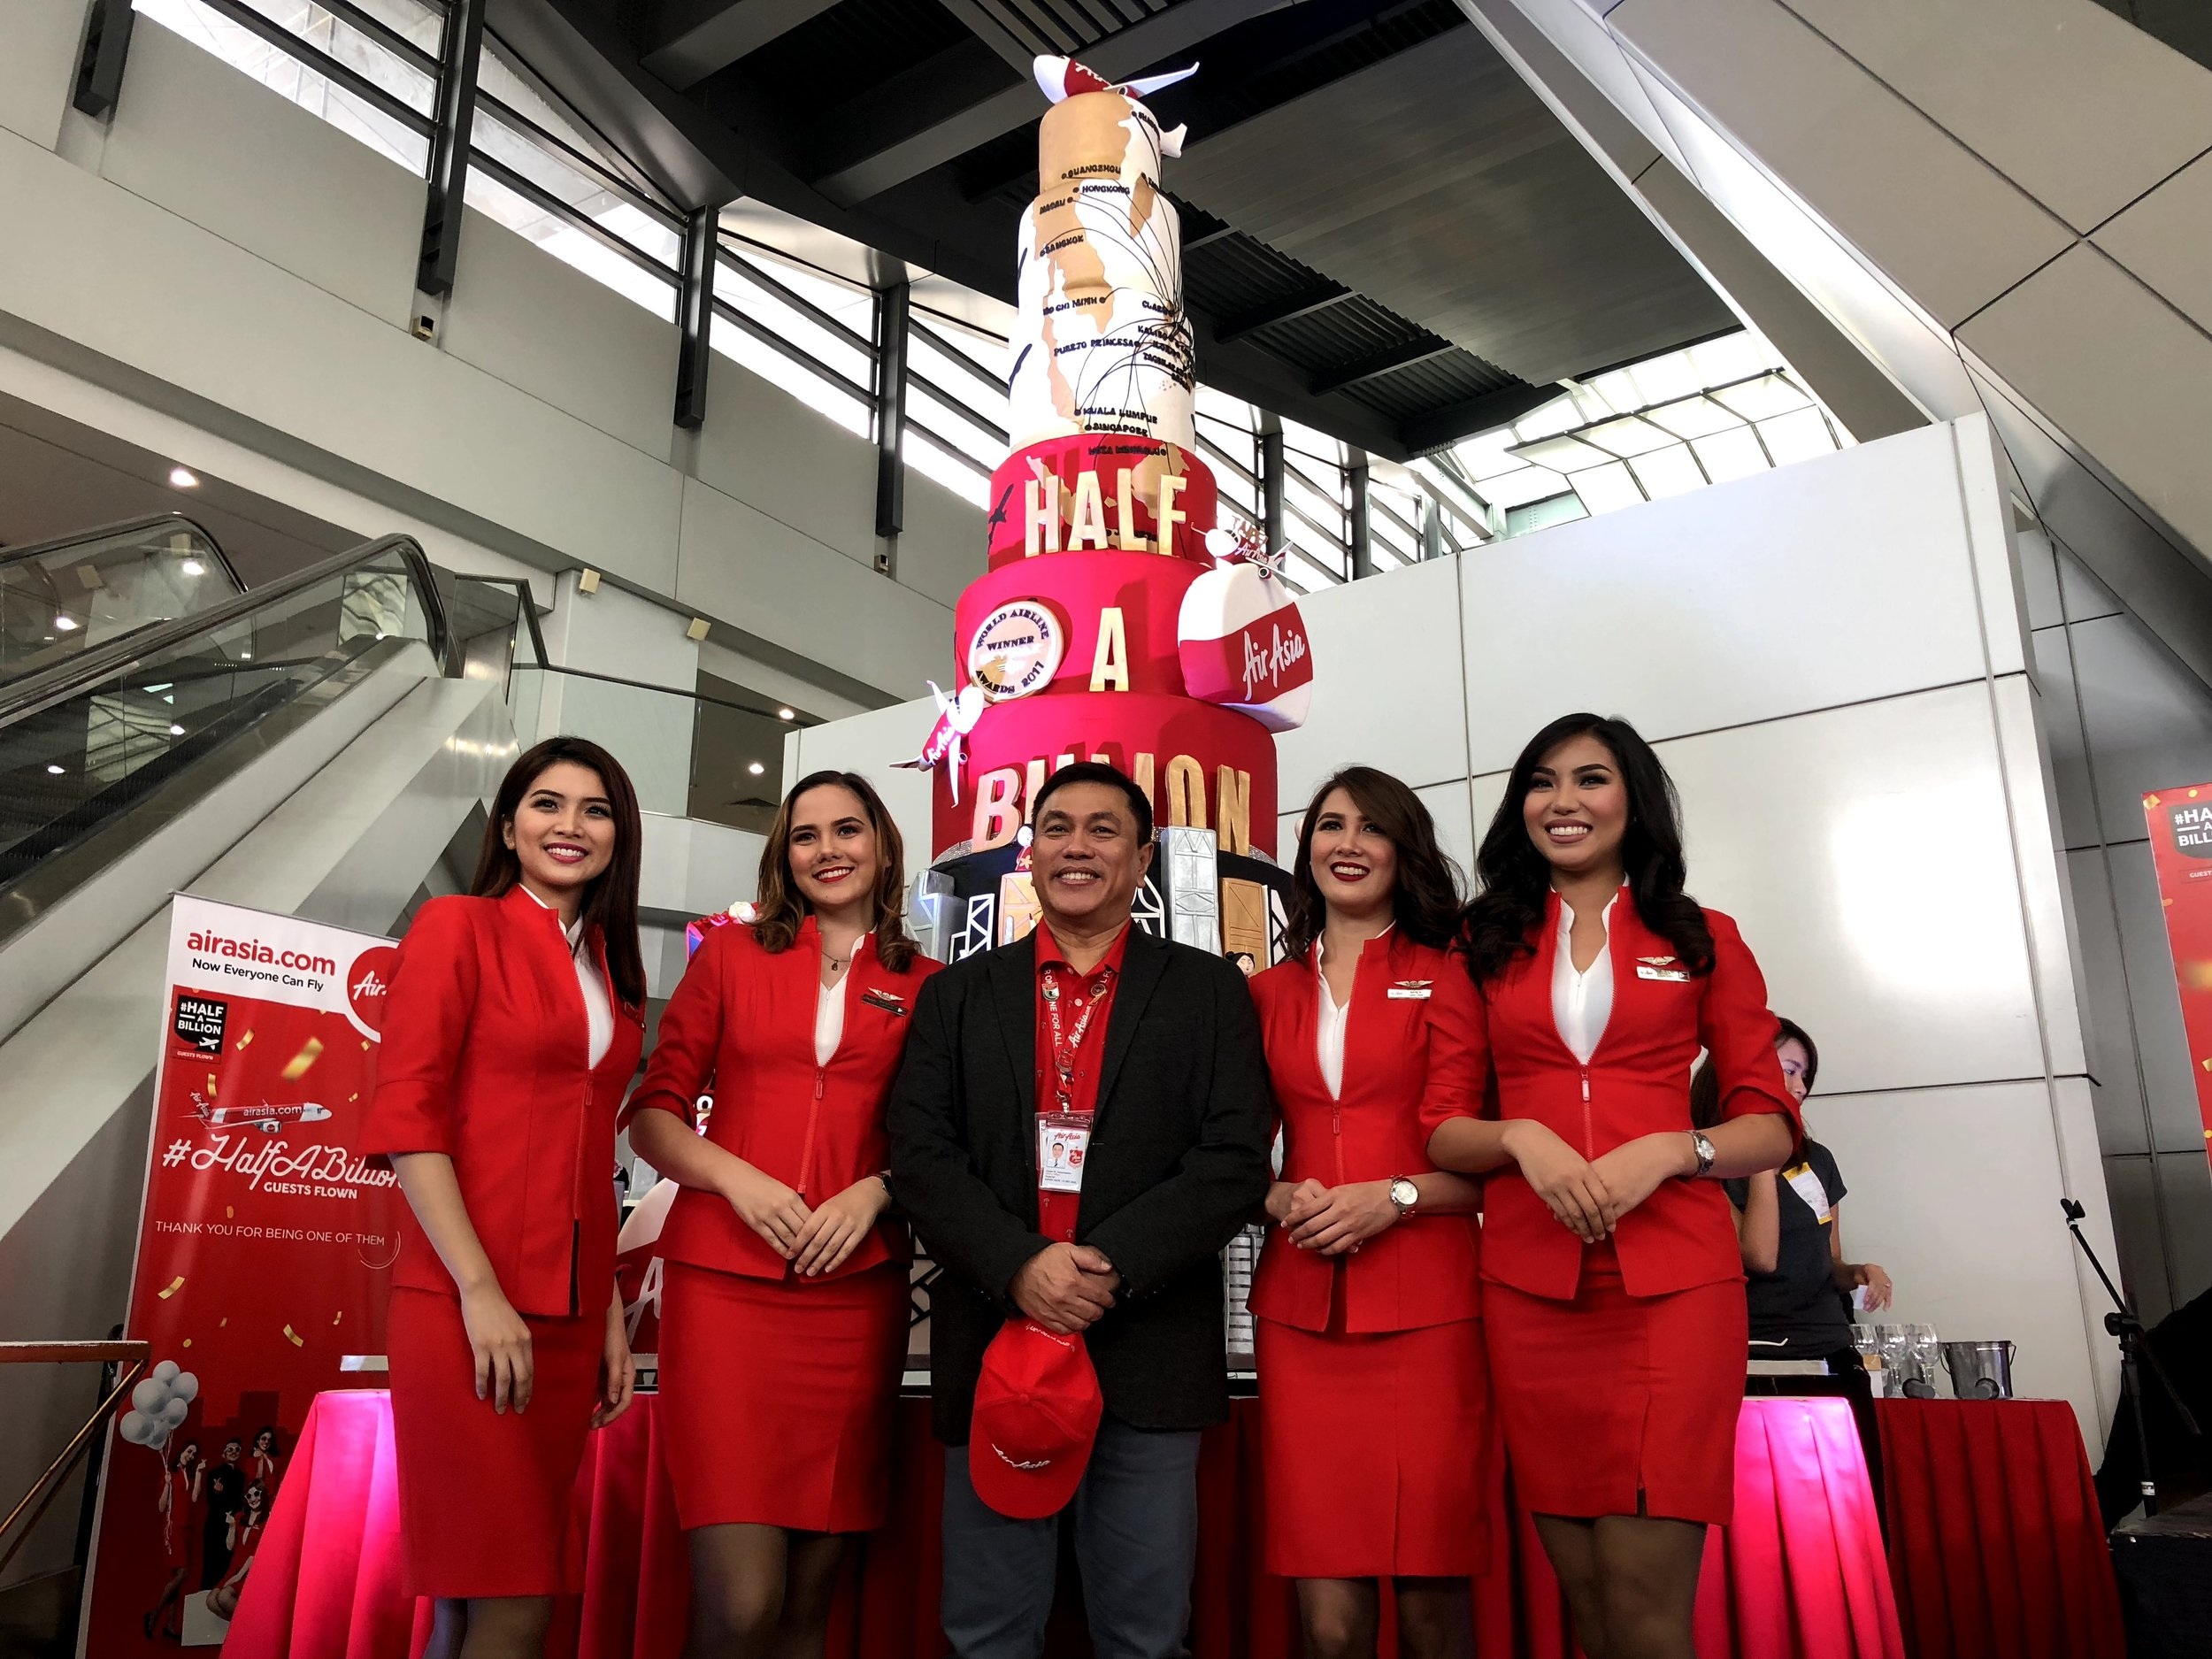 AirAsia Philippines CEO Capt. Dexter Comendador flanked by Cabin Crew at the Ninoy Aquino International Airport Terminal 3 with the 10-foot cake towering behind them.